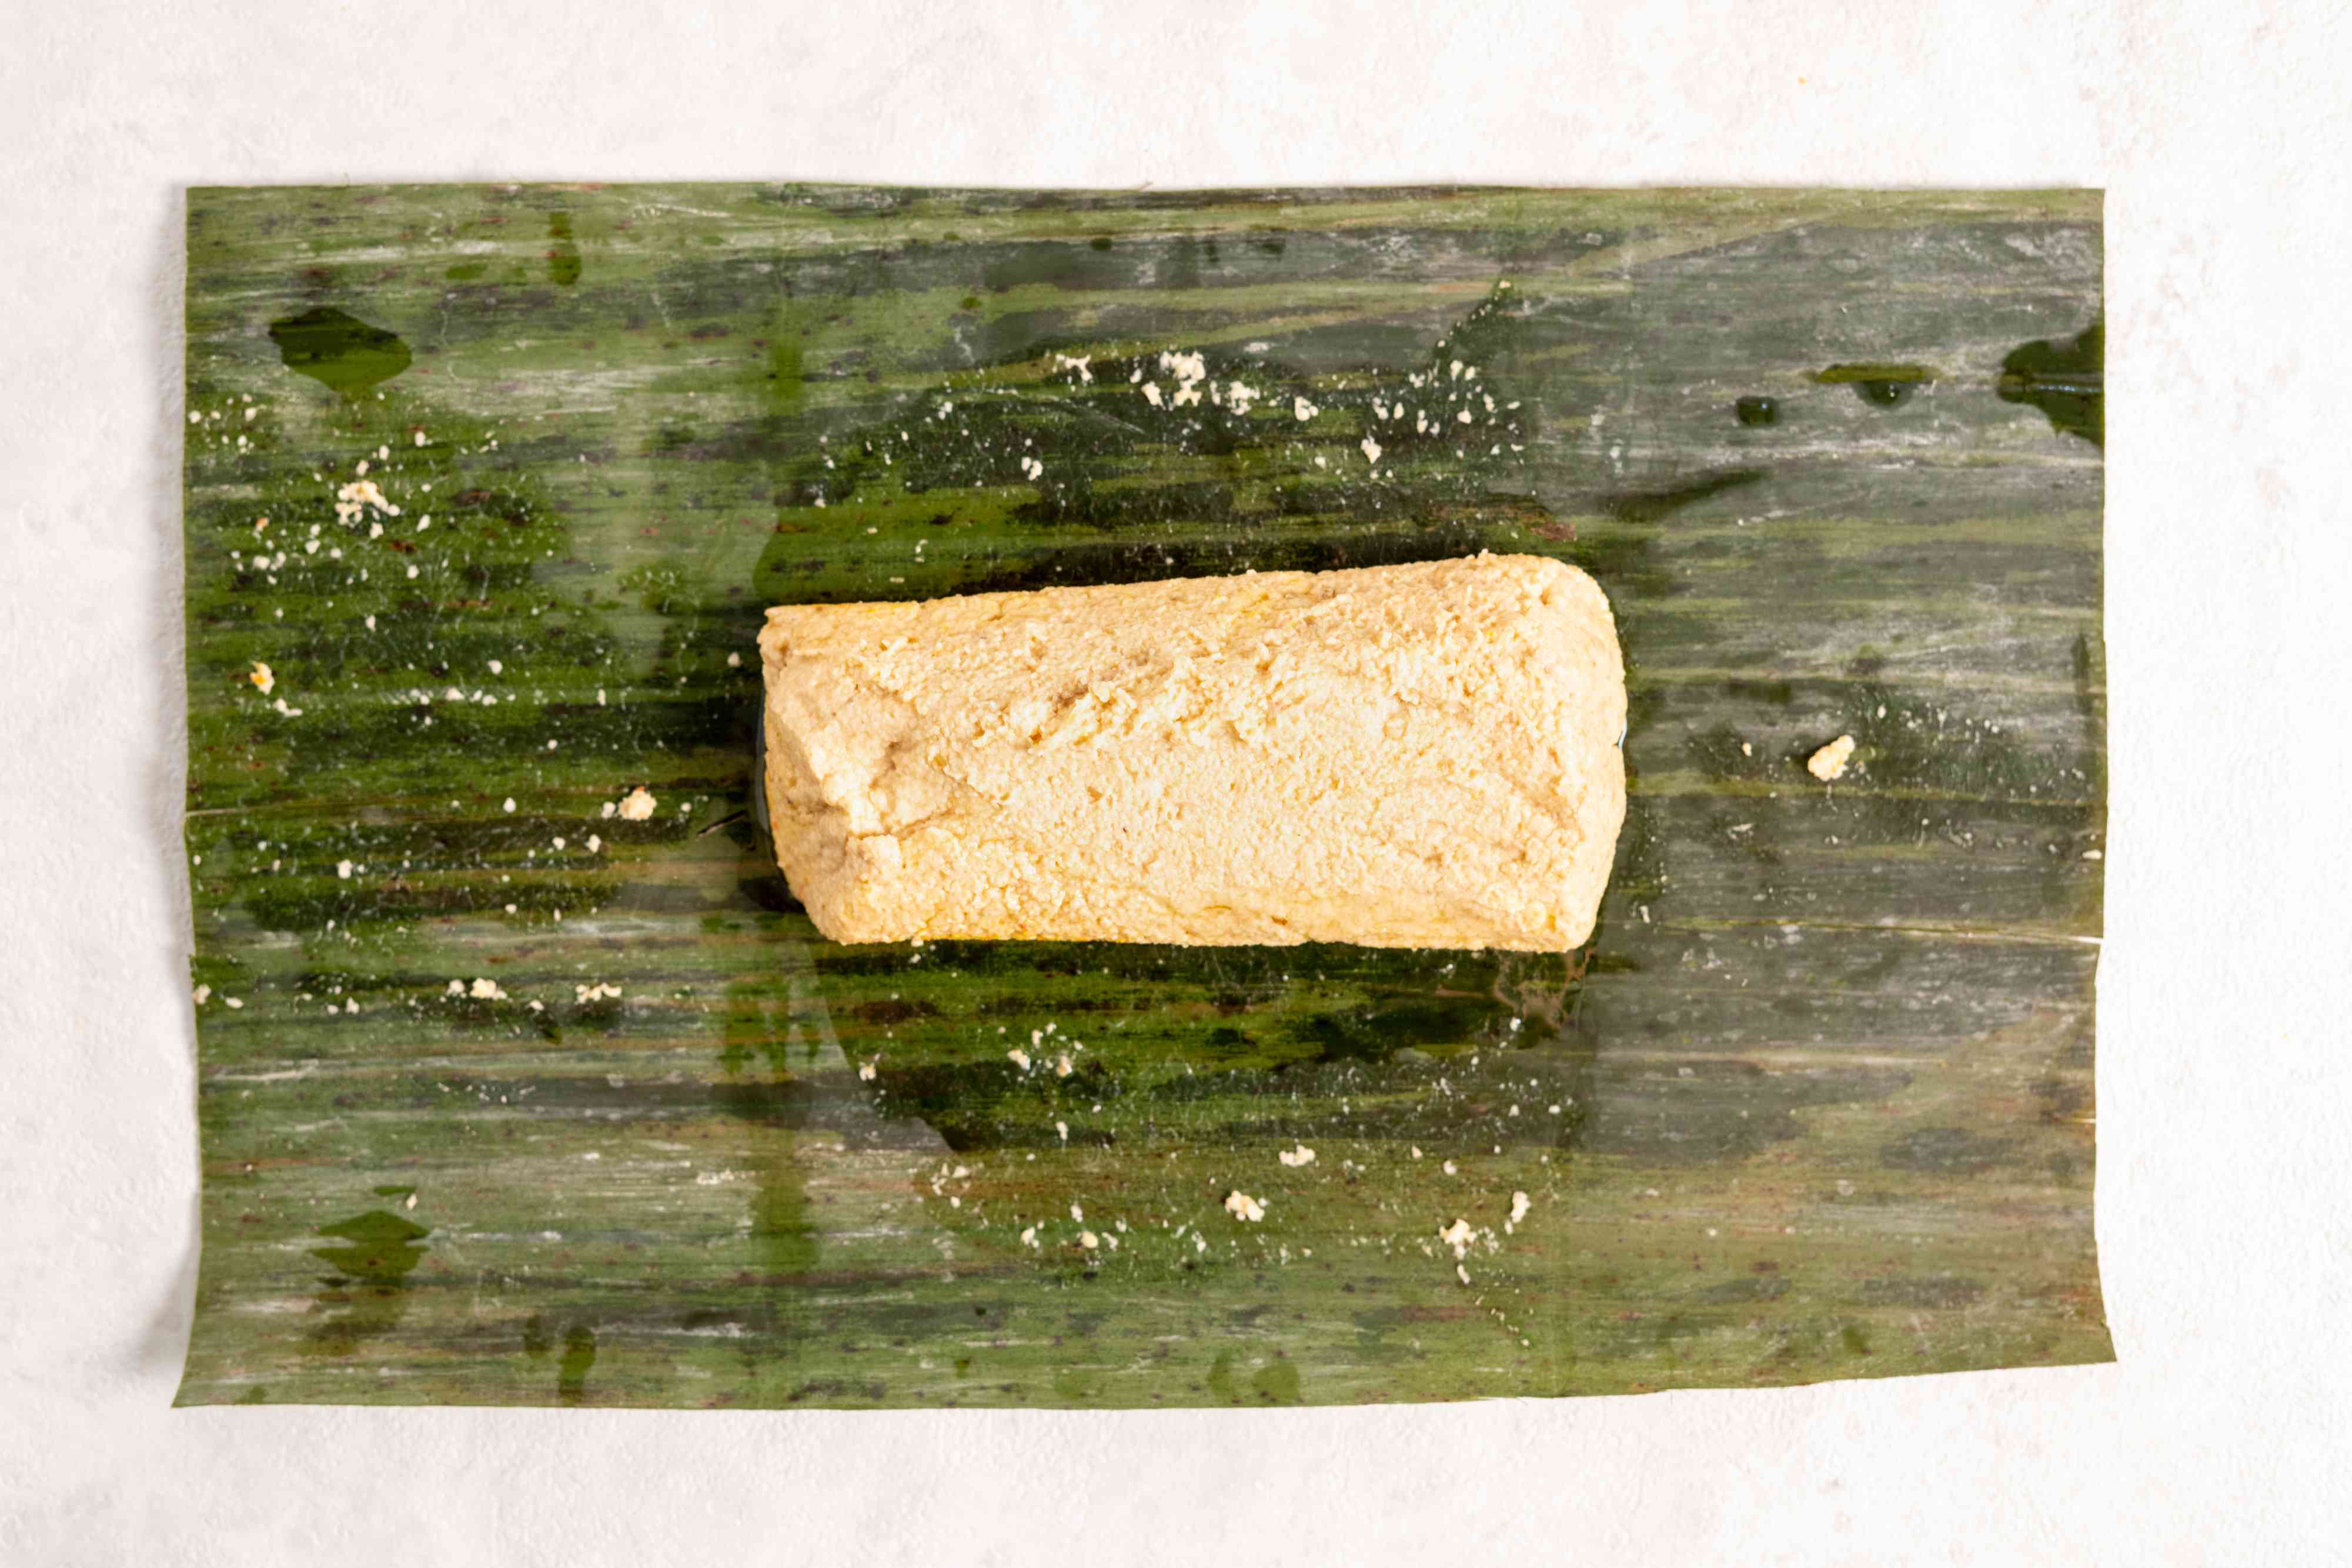 use the banana leaf to wrap the masa around the pork filling